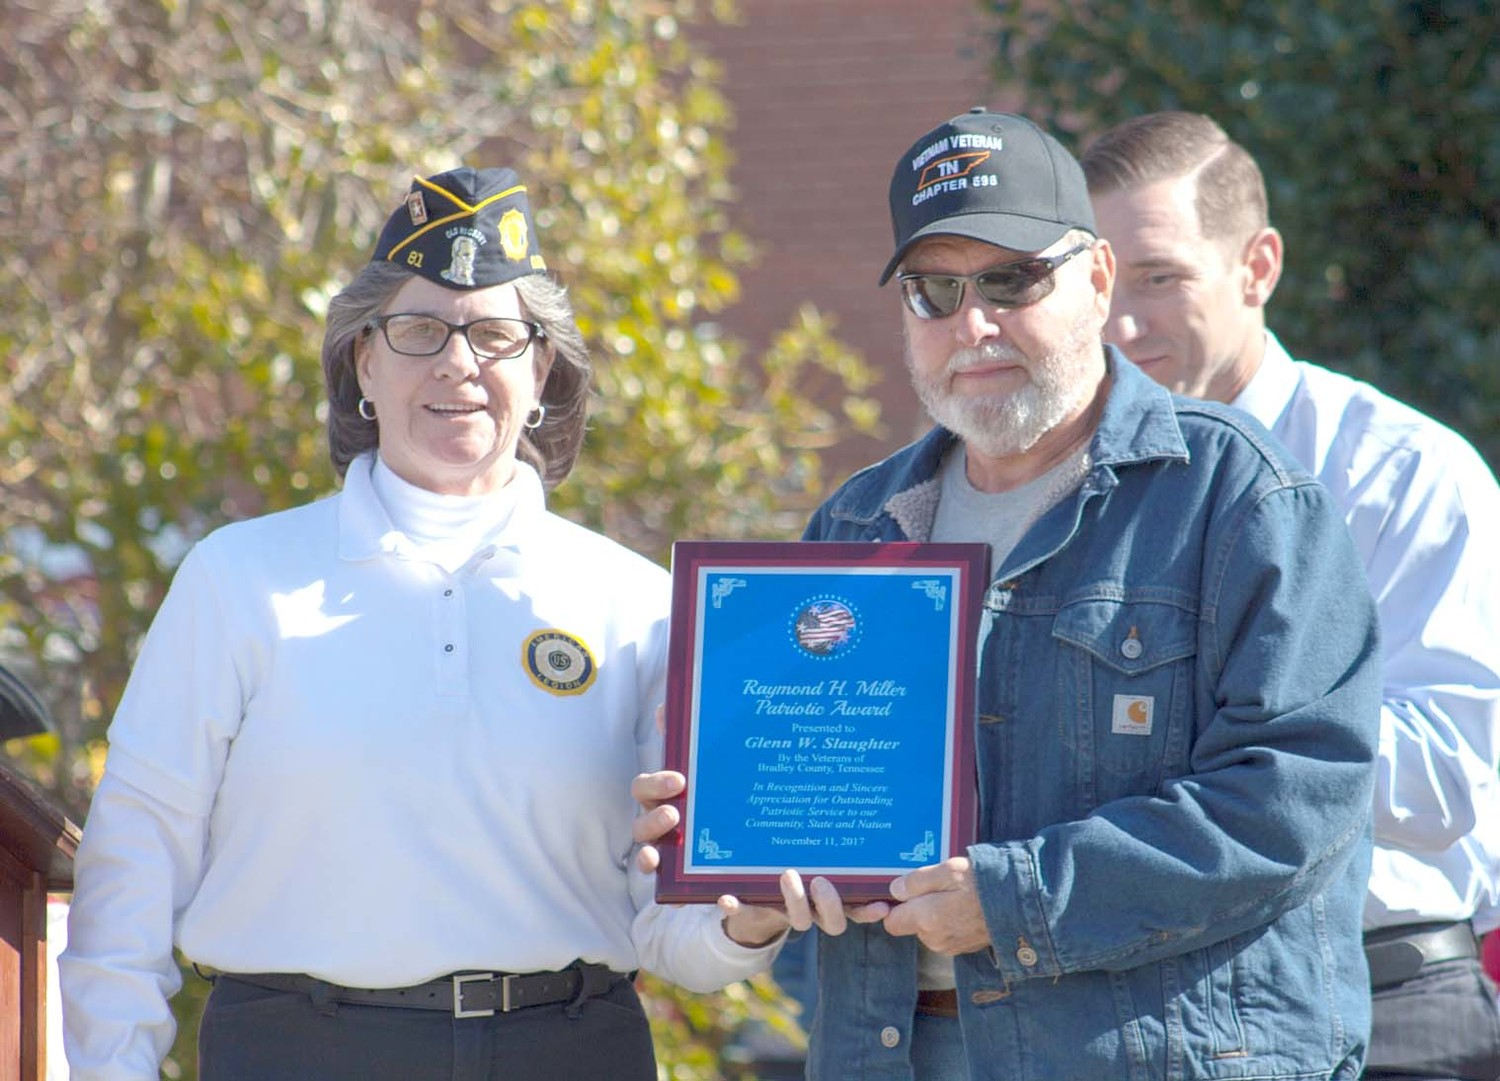 GLENN SLAUGHTER, right, was presented a plaque by Mary Baier, on behalf of Bradley County veterans organizations. Slaughter was presented the Raymond H. Miller Patriotic Award for his service to veterans and veteran organizations. He is the seventh recipient of the award.